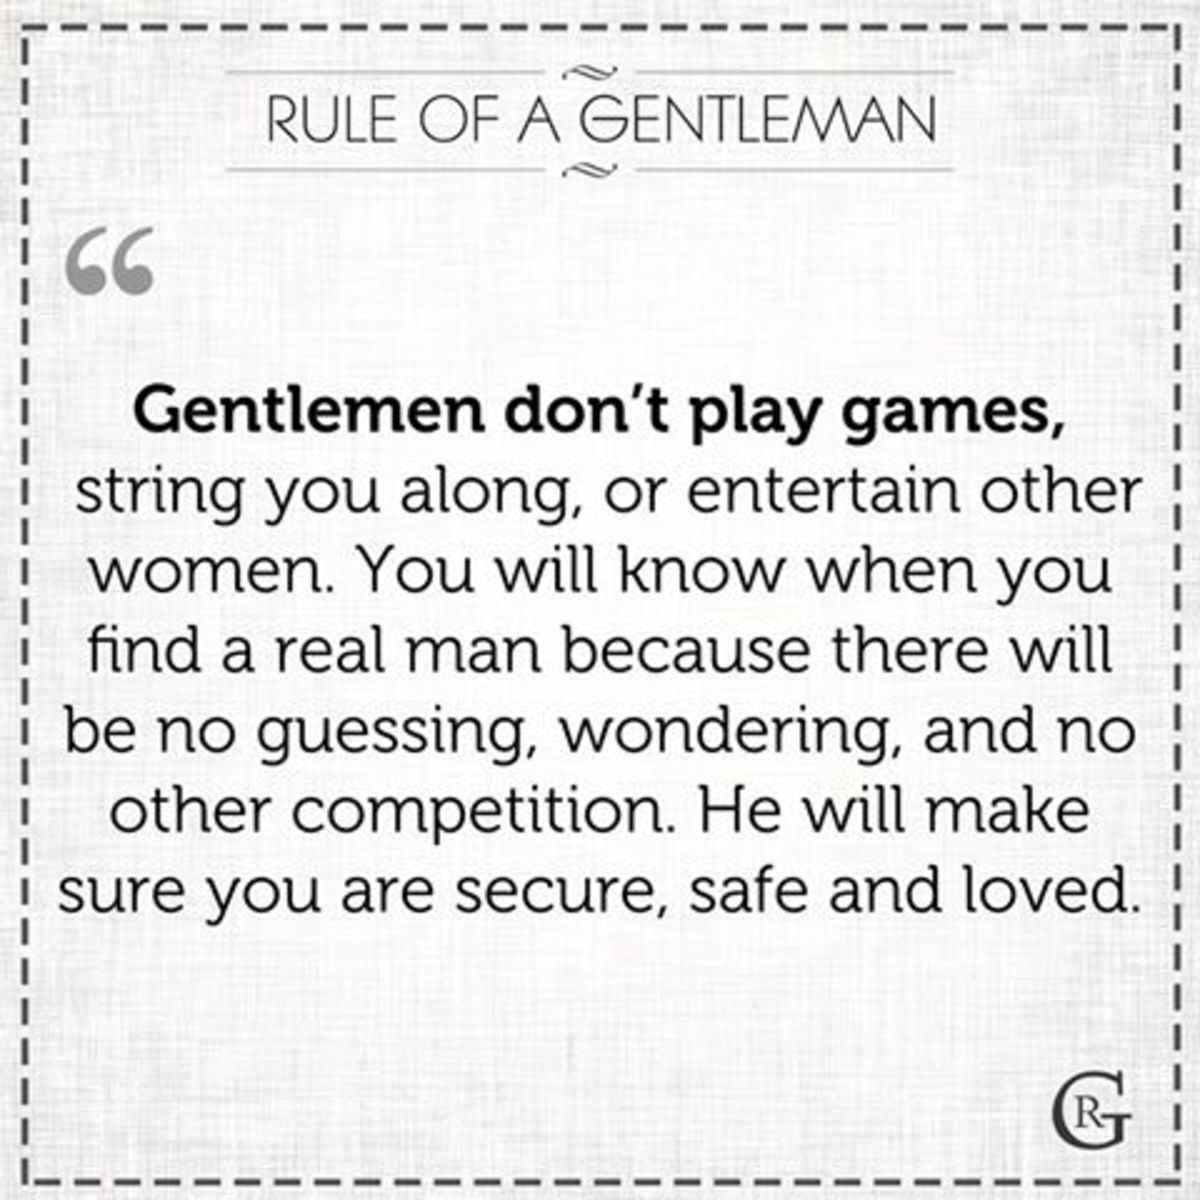 10 signs you're dating a true gentleman